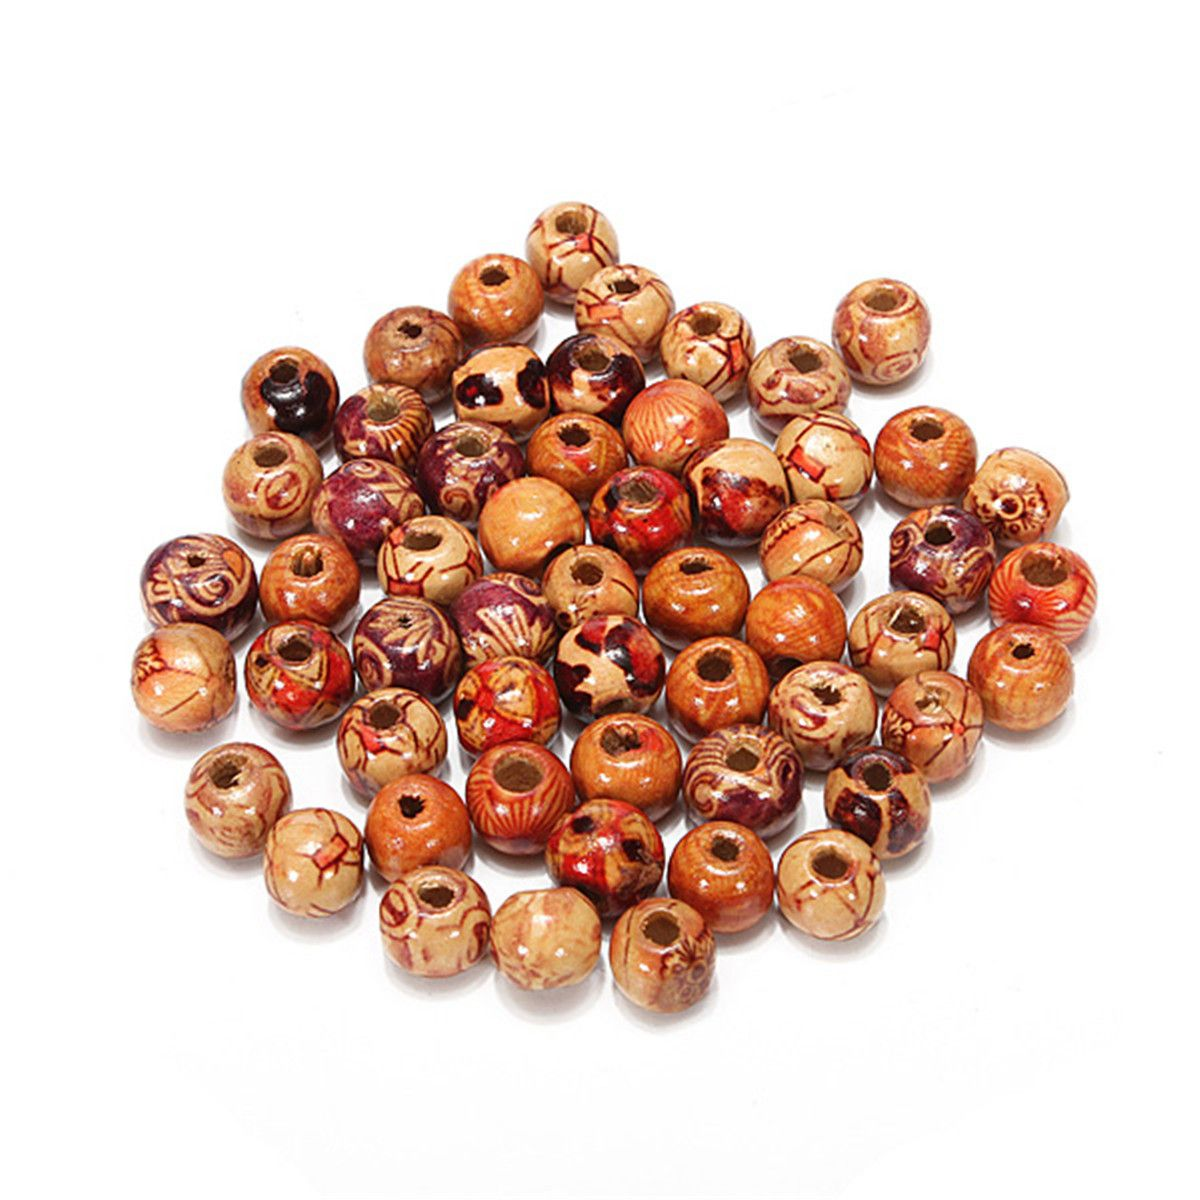 100x Wood Round Bead Spacer Charms from Clever Clad